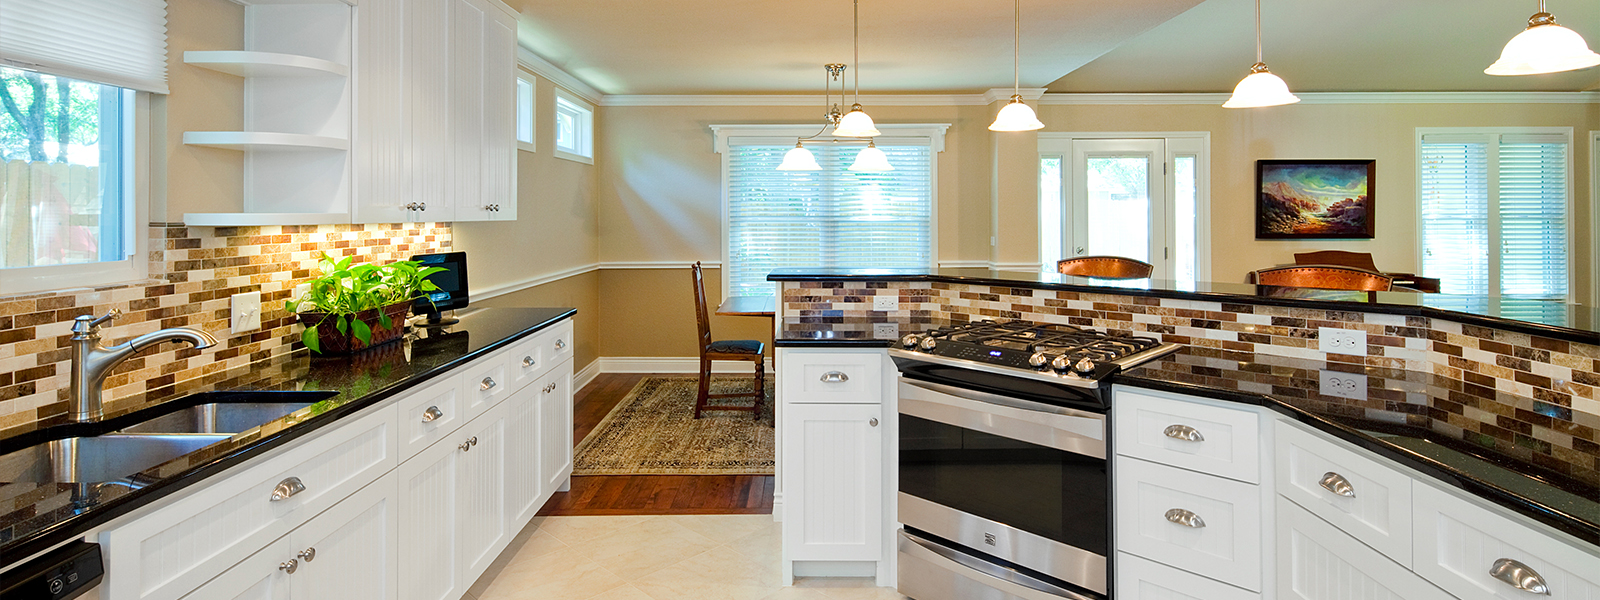 Austin residential remodeling contractor